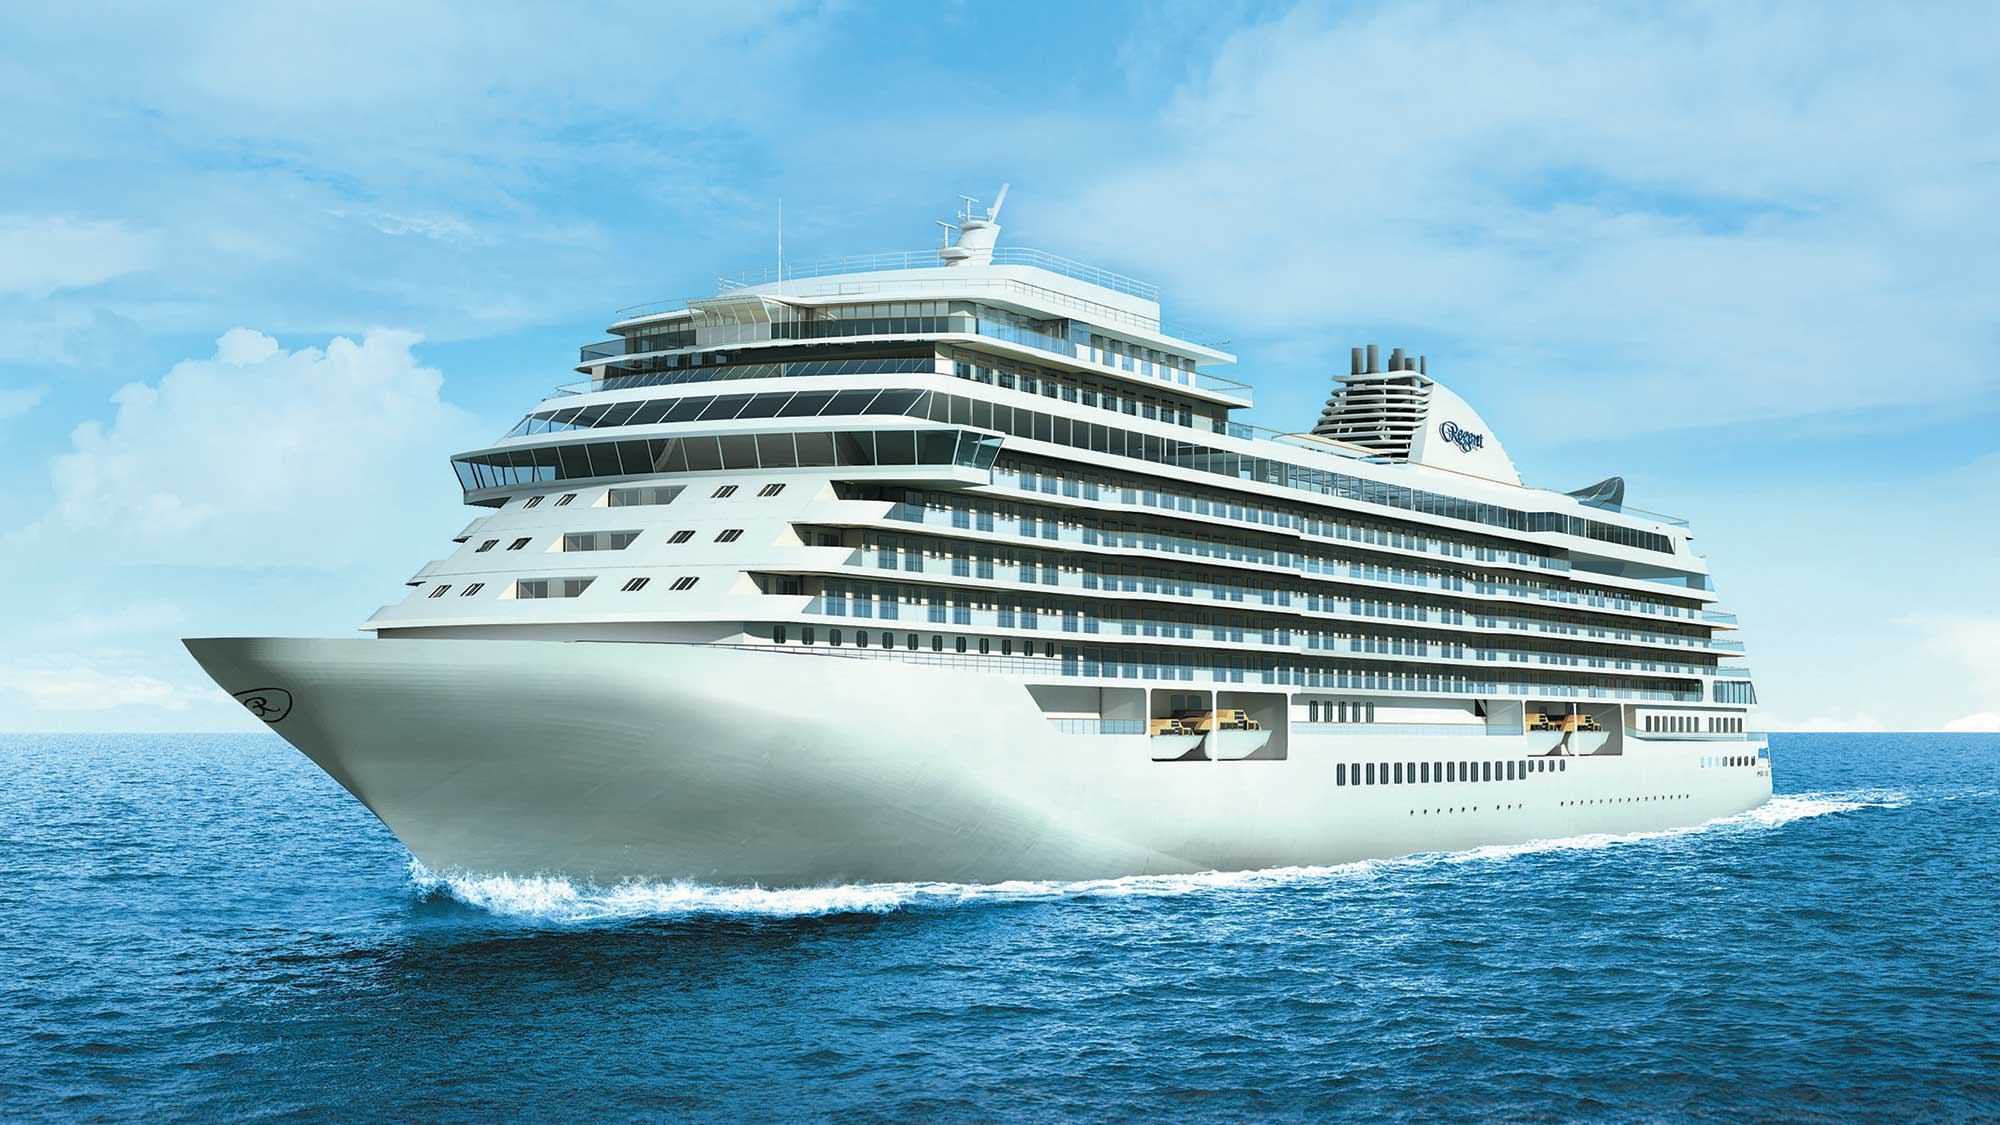 Regent Holds Contest To Name Next Ship Travel Weekly